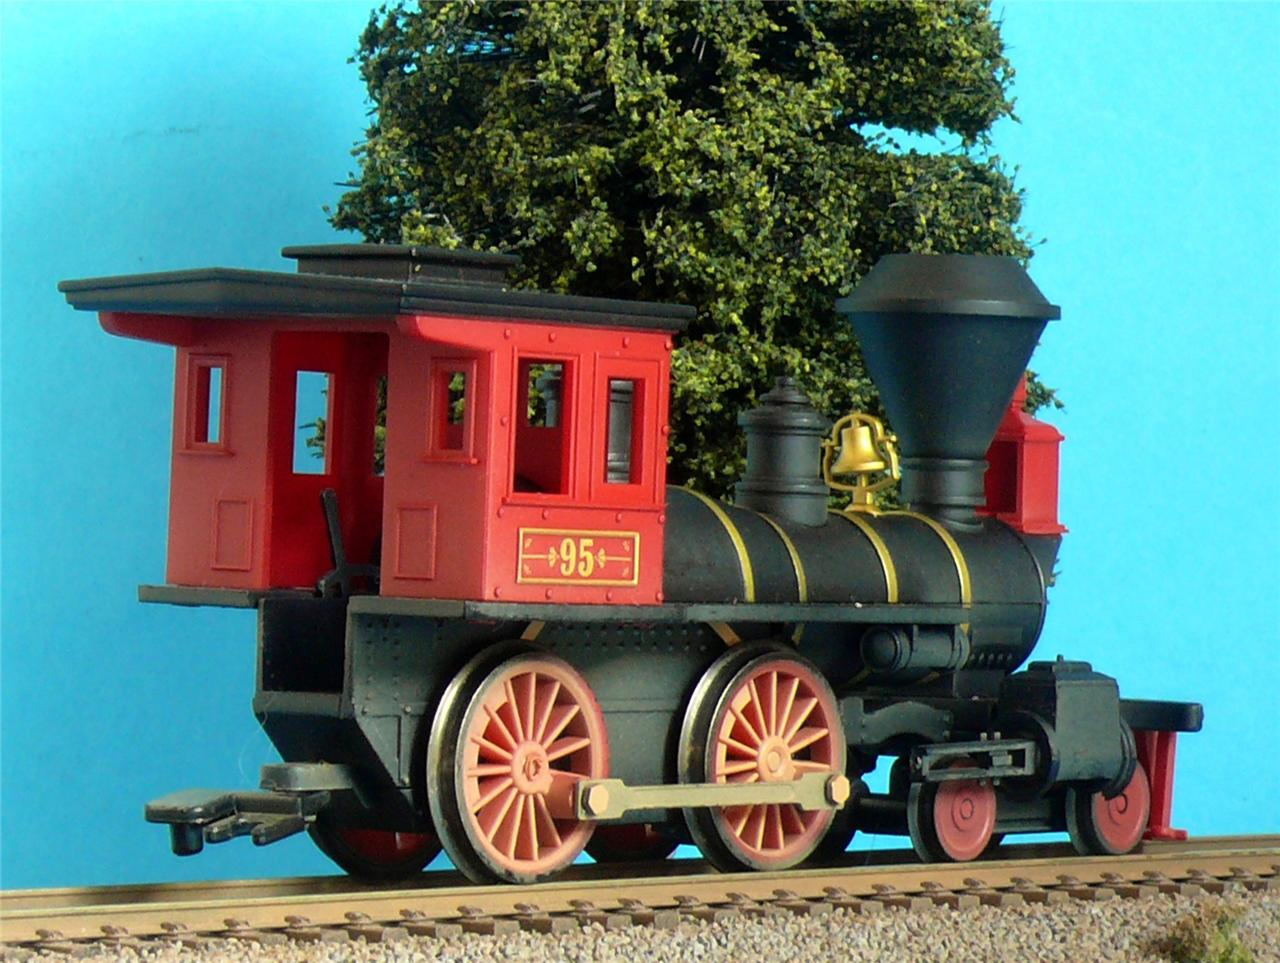 New Toy Story 3 Train : Toy story locomotive engine from r